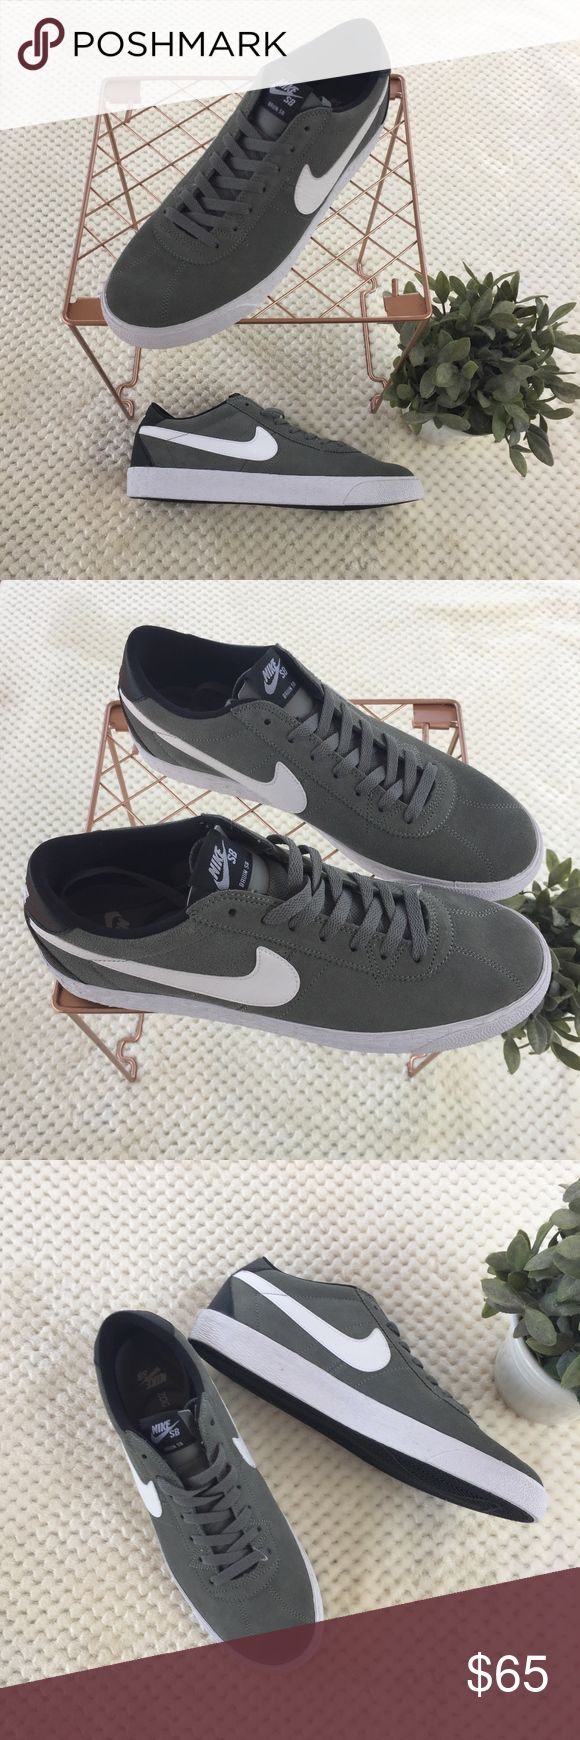 NEW!Nike Men's SB Bruin Zoom Prm SE Skate Shoe Nike Men's SB Bruin Zoom Prm SE Skate   ❈ Condition: New Without Box  ❈ Everything I sell comes from my clean, smoke-free & pet-free home.  ❈ All items are 100% authentic! I stand behind everything I sell. ❈ Questions? Comment below, I will be more than happy to assist you. ❈ Shipping Monday ➡️ Friday - Fast Same/Next Day Nike Shoes Sneakers